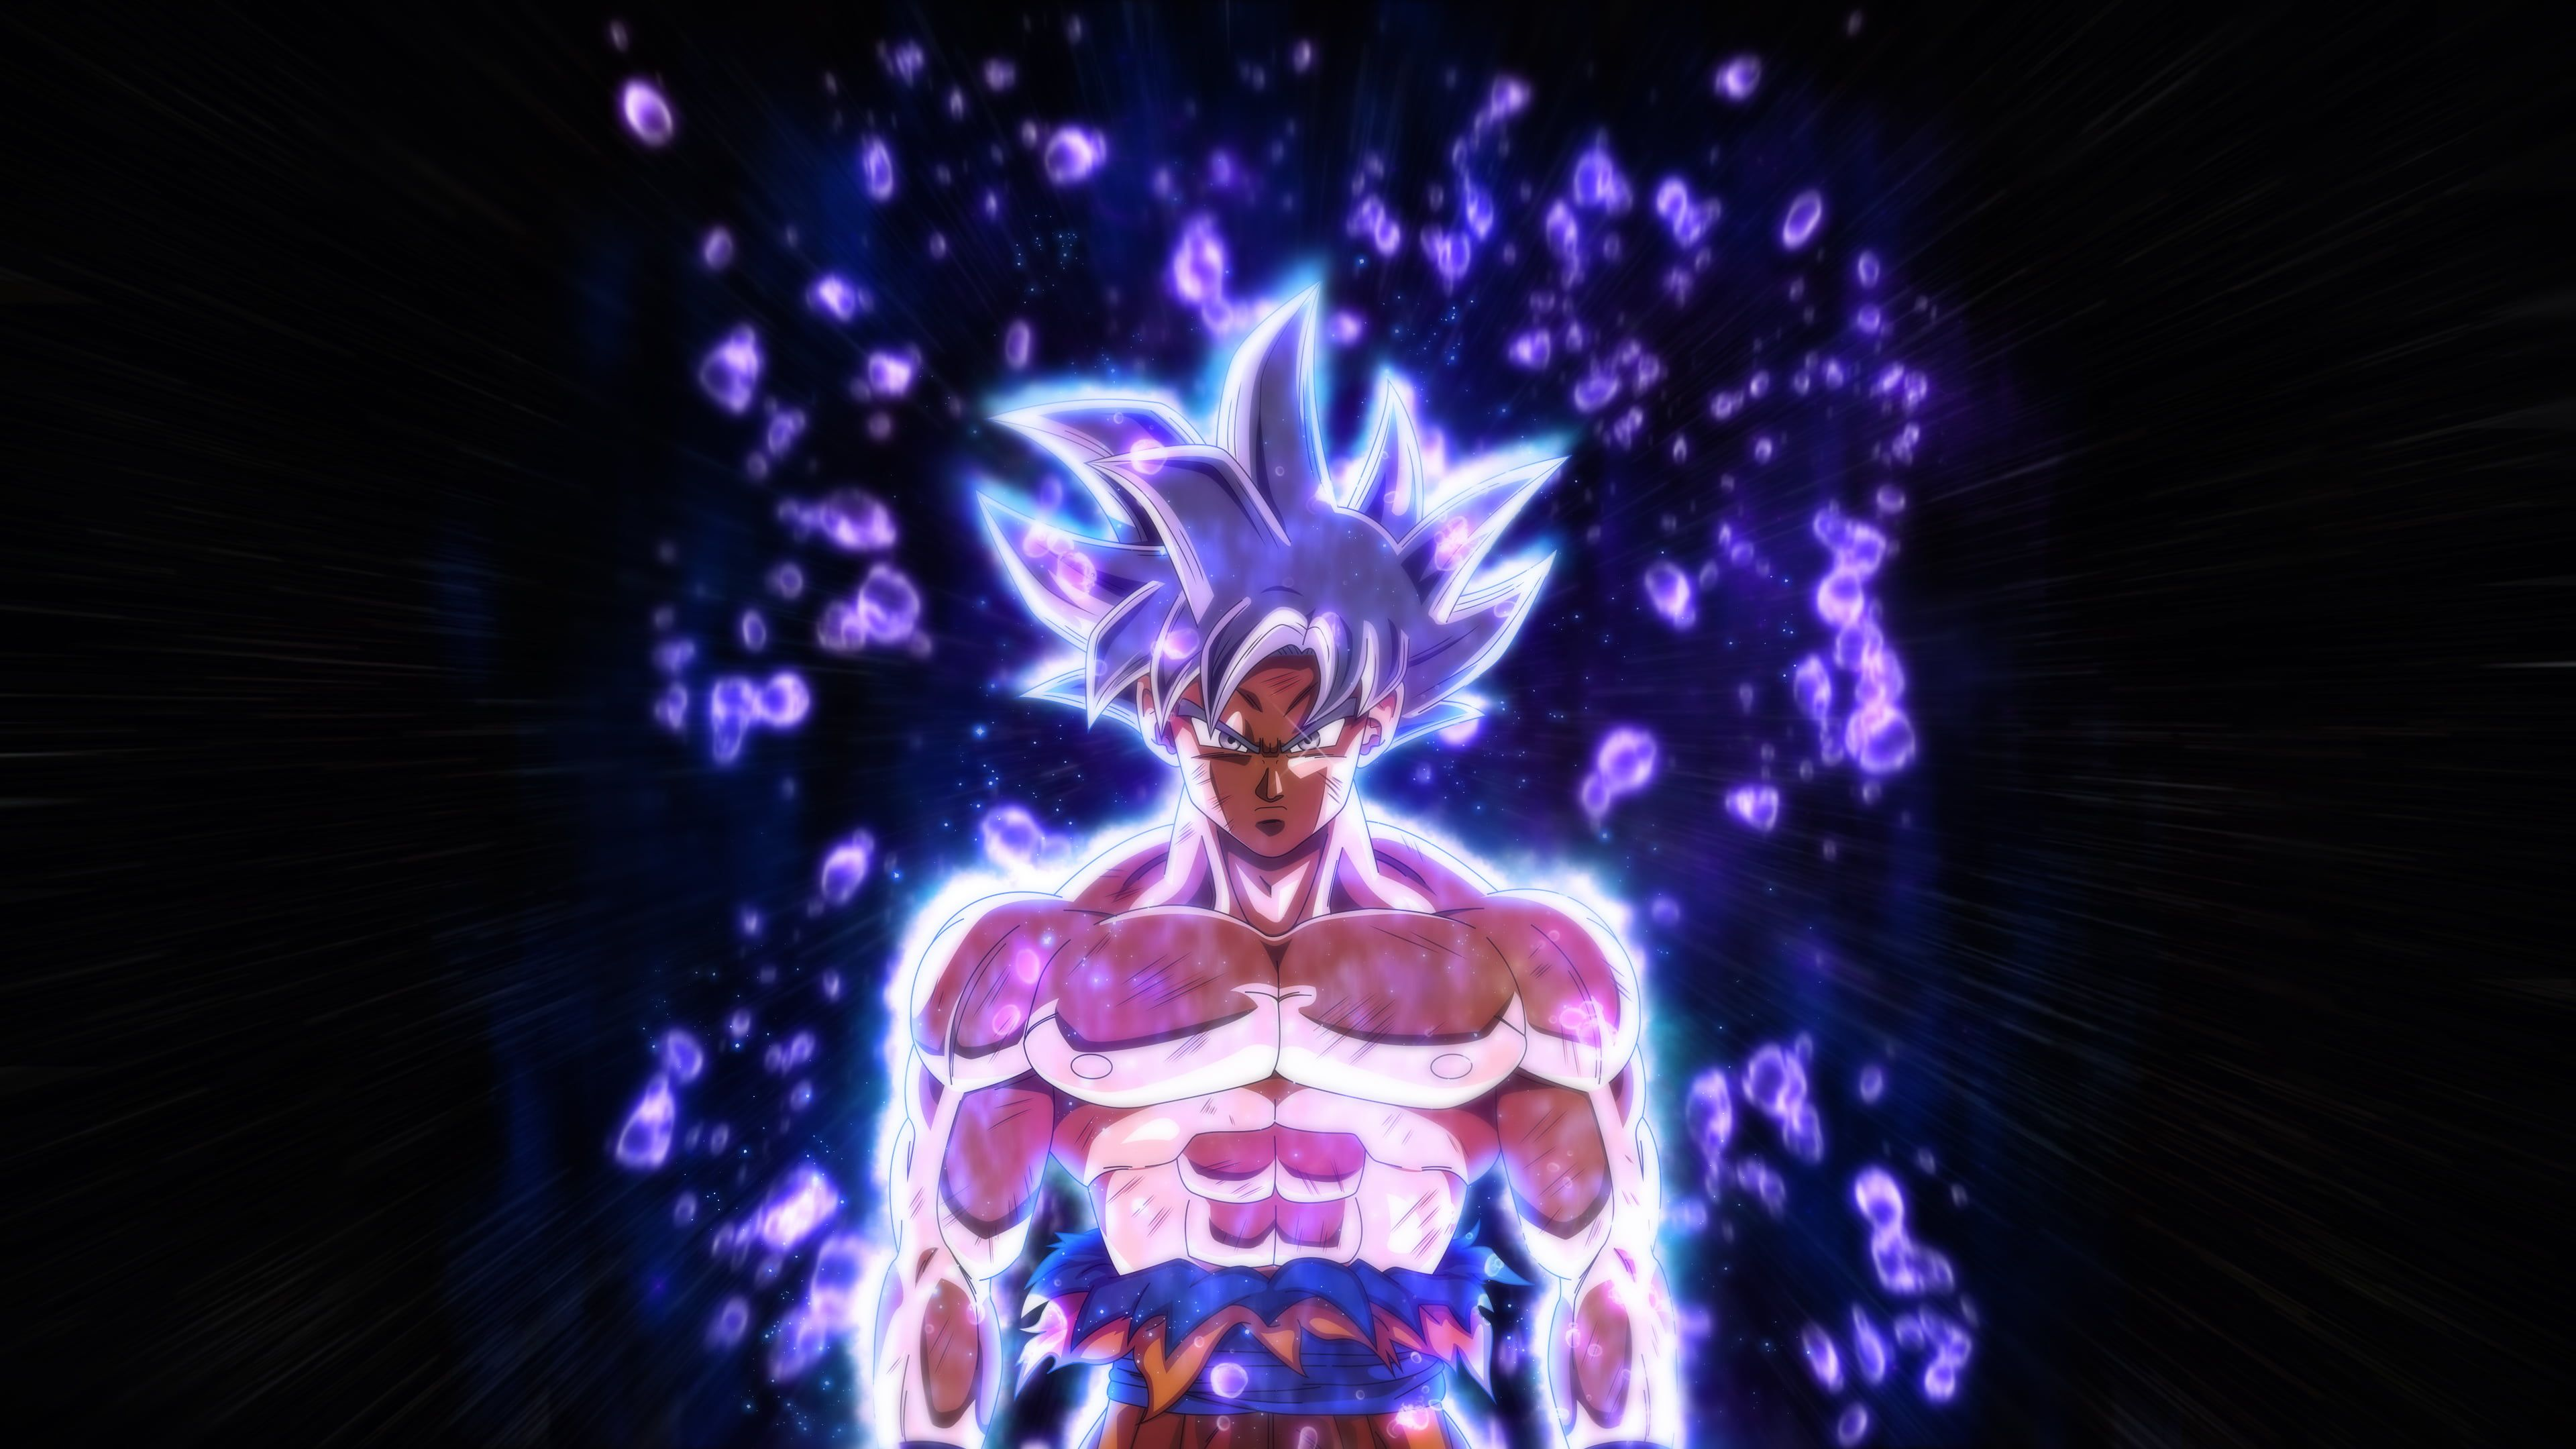 Son Goku Ultra Instinct Digital Wallpaper Dragon Ball Super Son